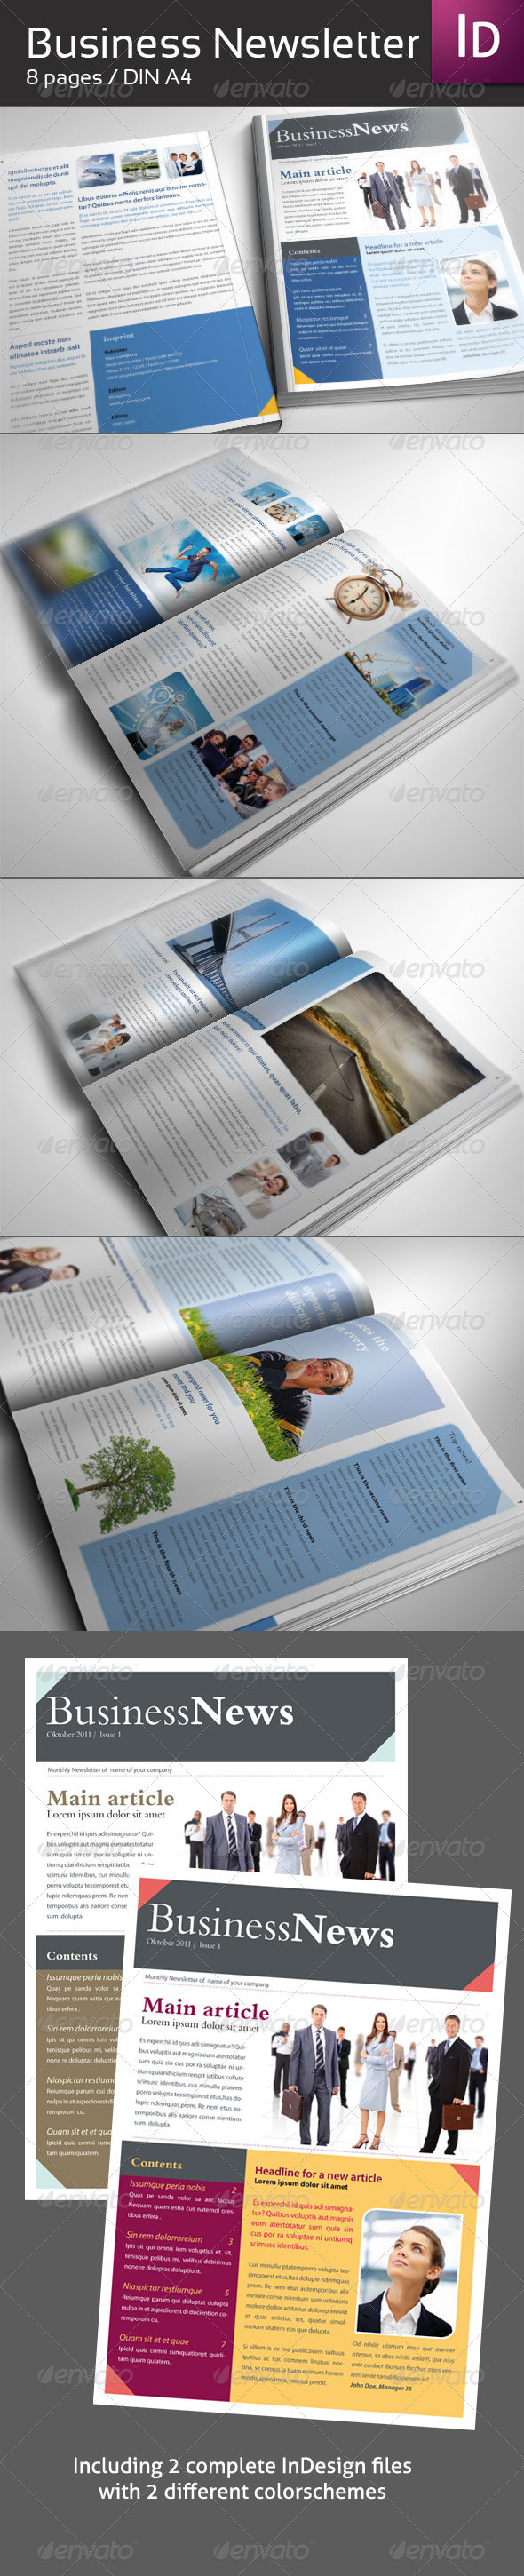 Business Newsletter DIN A4 - Newsletters Print Templates